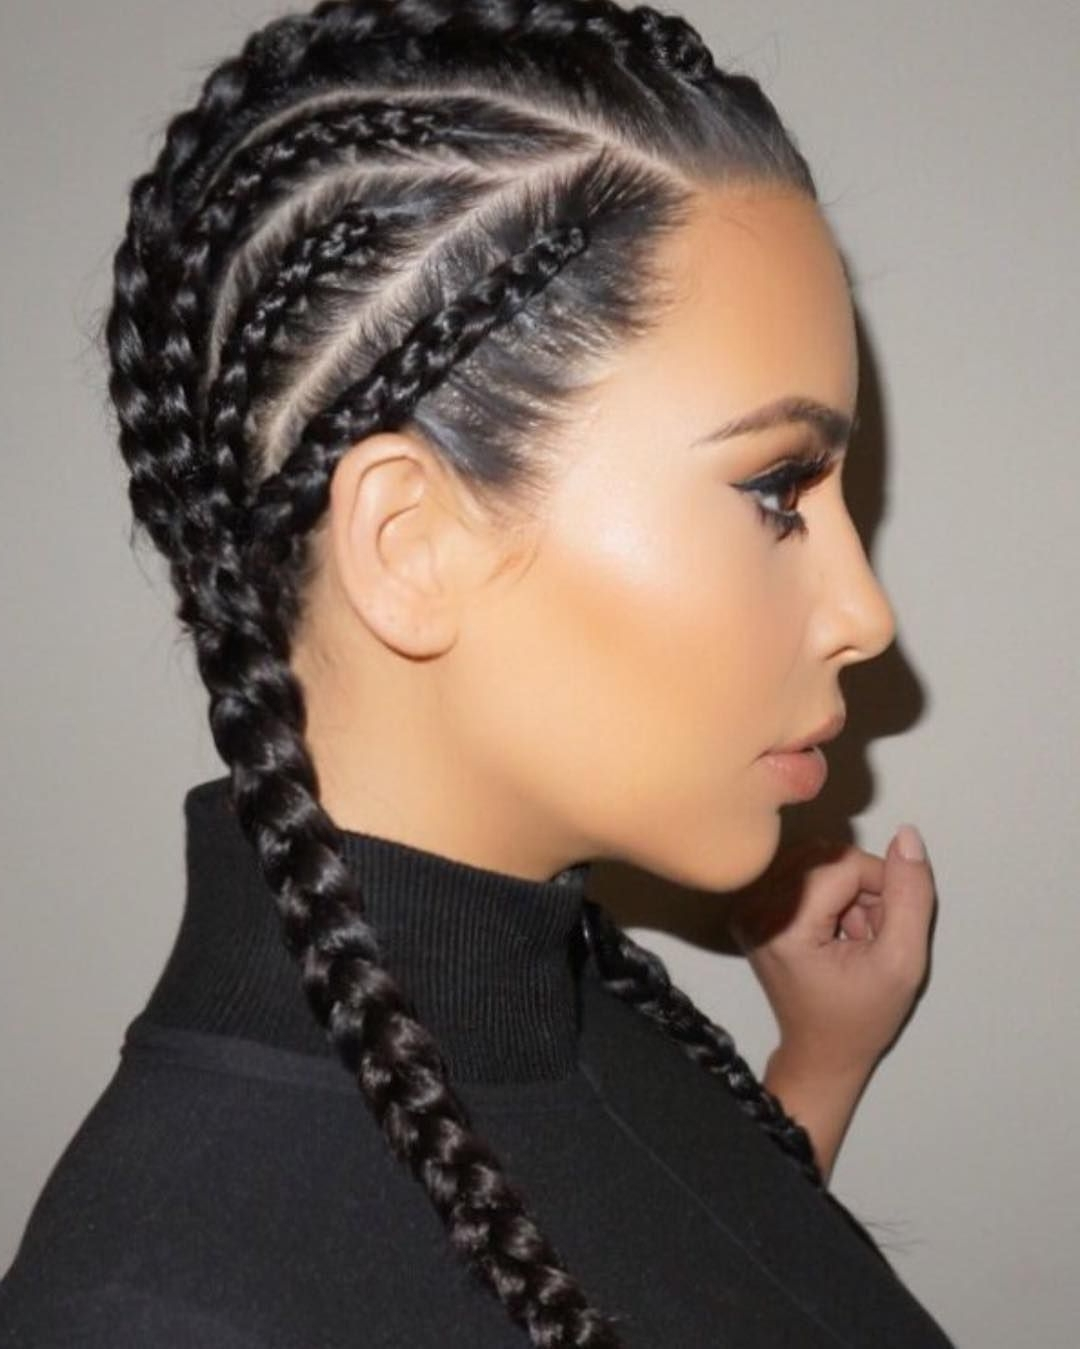 Hair Style, Braid Game (View 7 of 15)